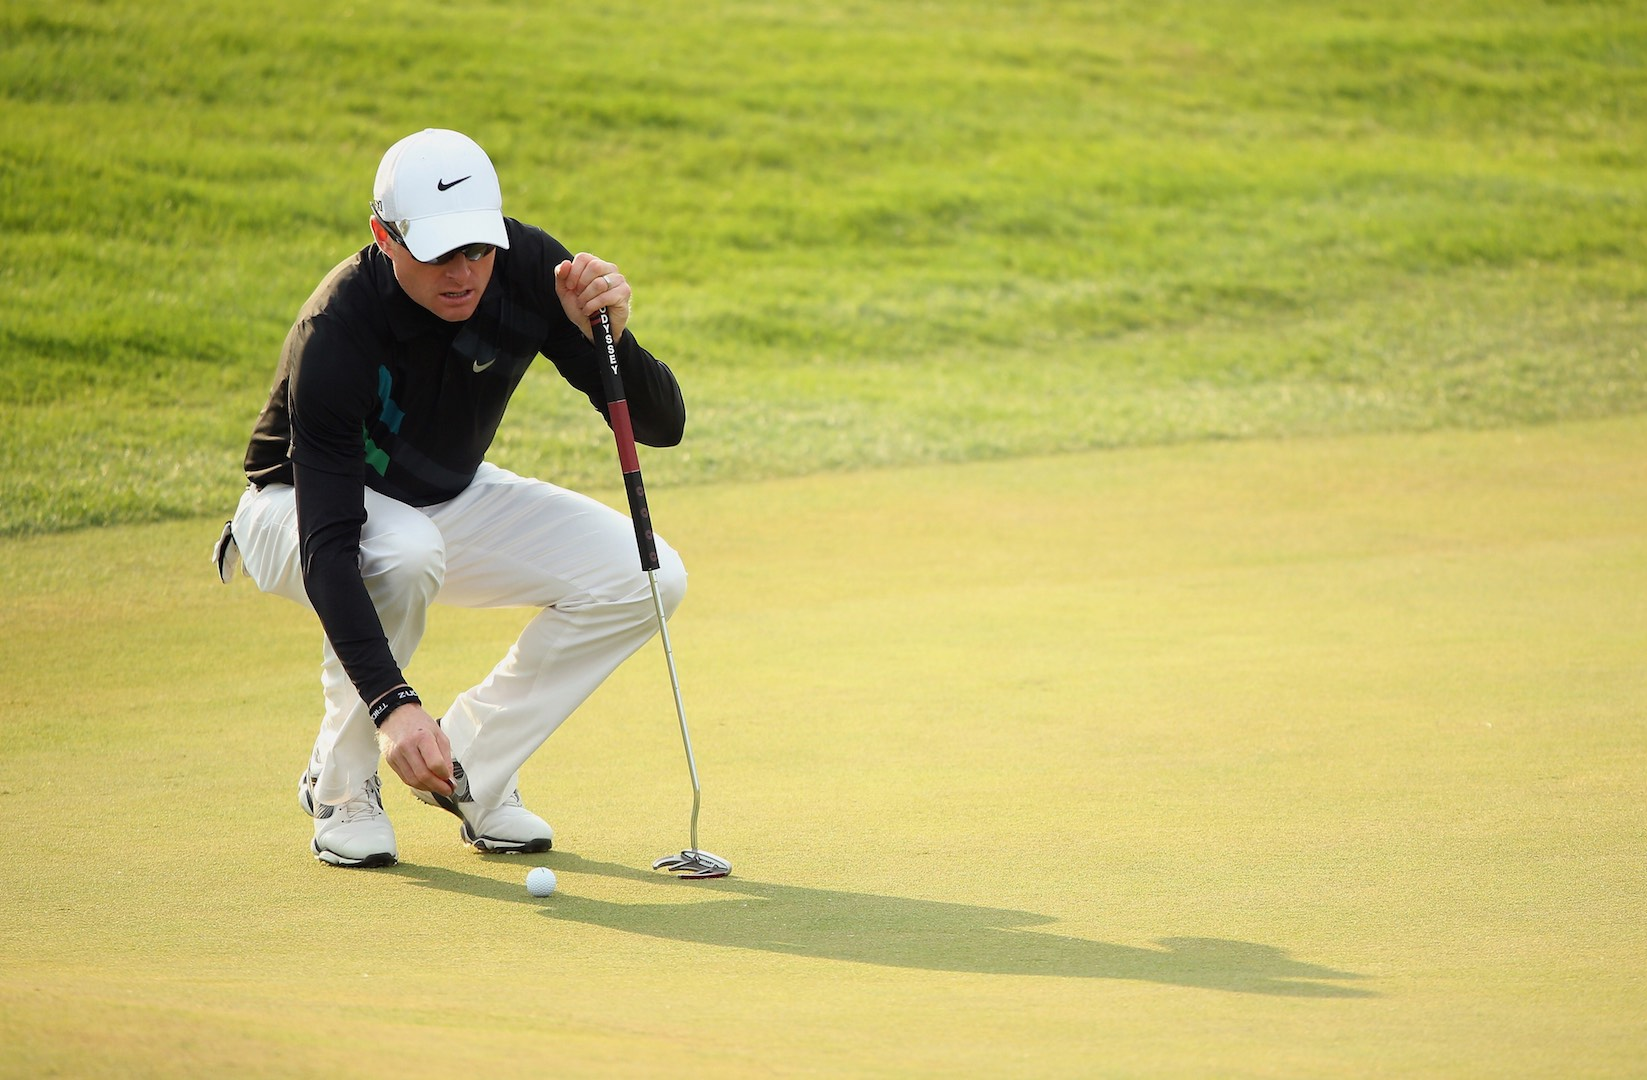 Golf's Top 10 Rule Breakers